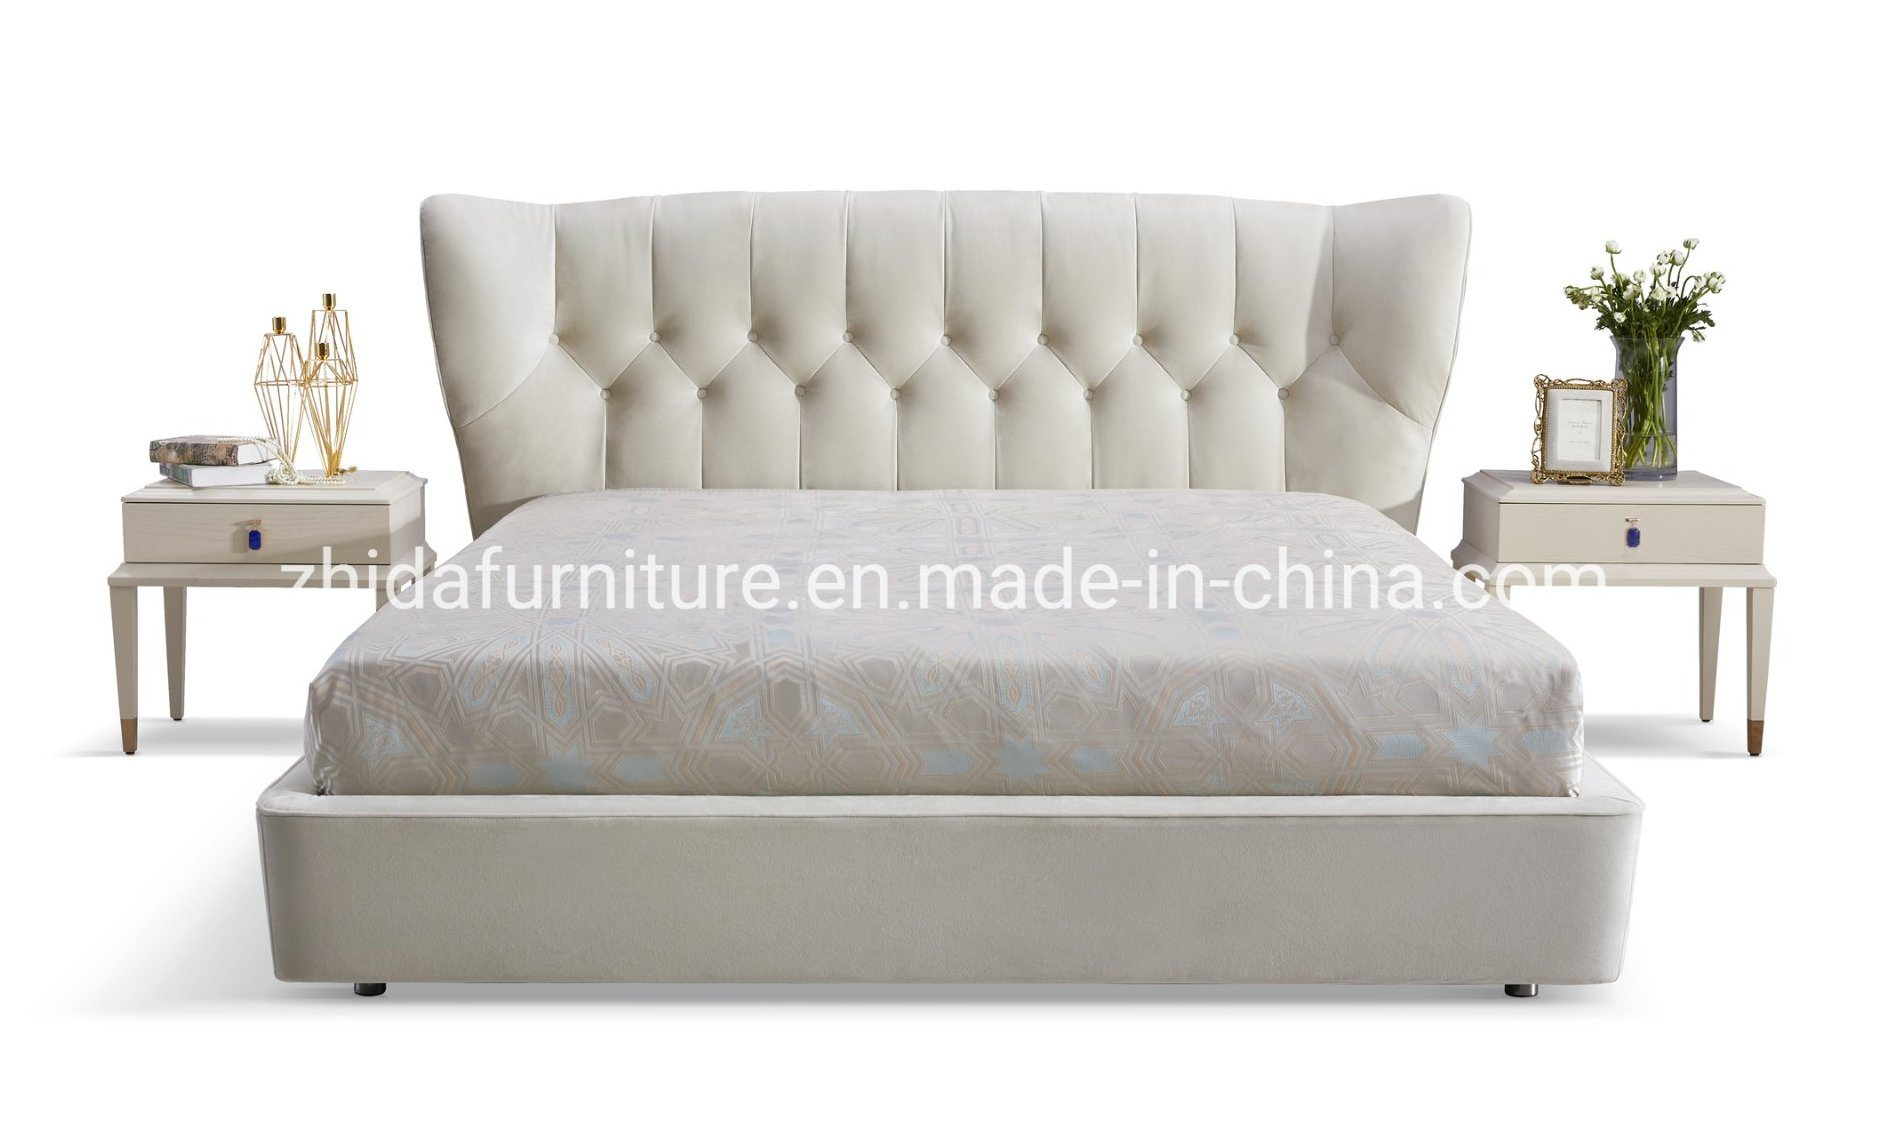 Image of: China Home Furniture Modern Furniture Beige Color Fabric Bedroom Bed China Modern Fabric Bed Bedroom Bed